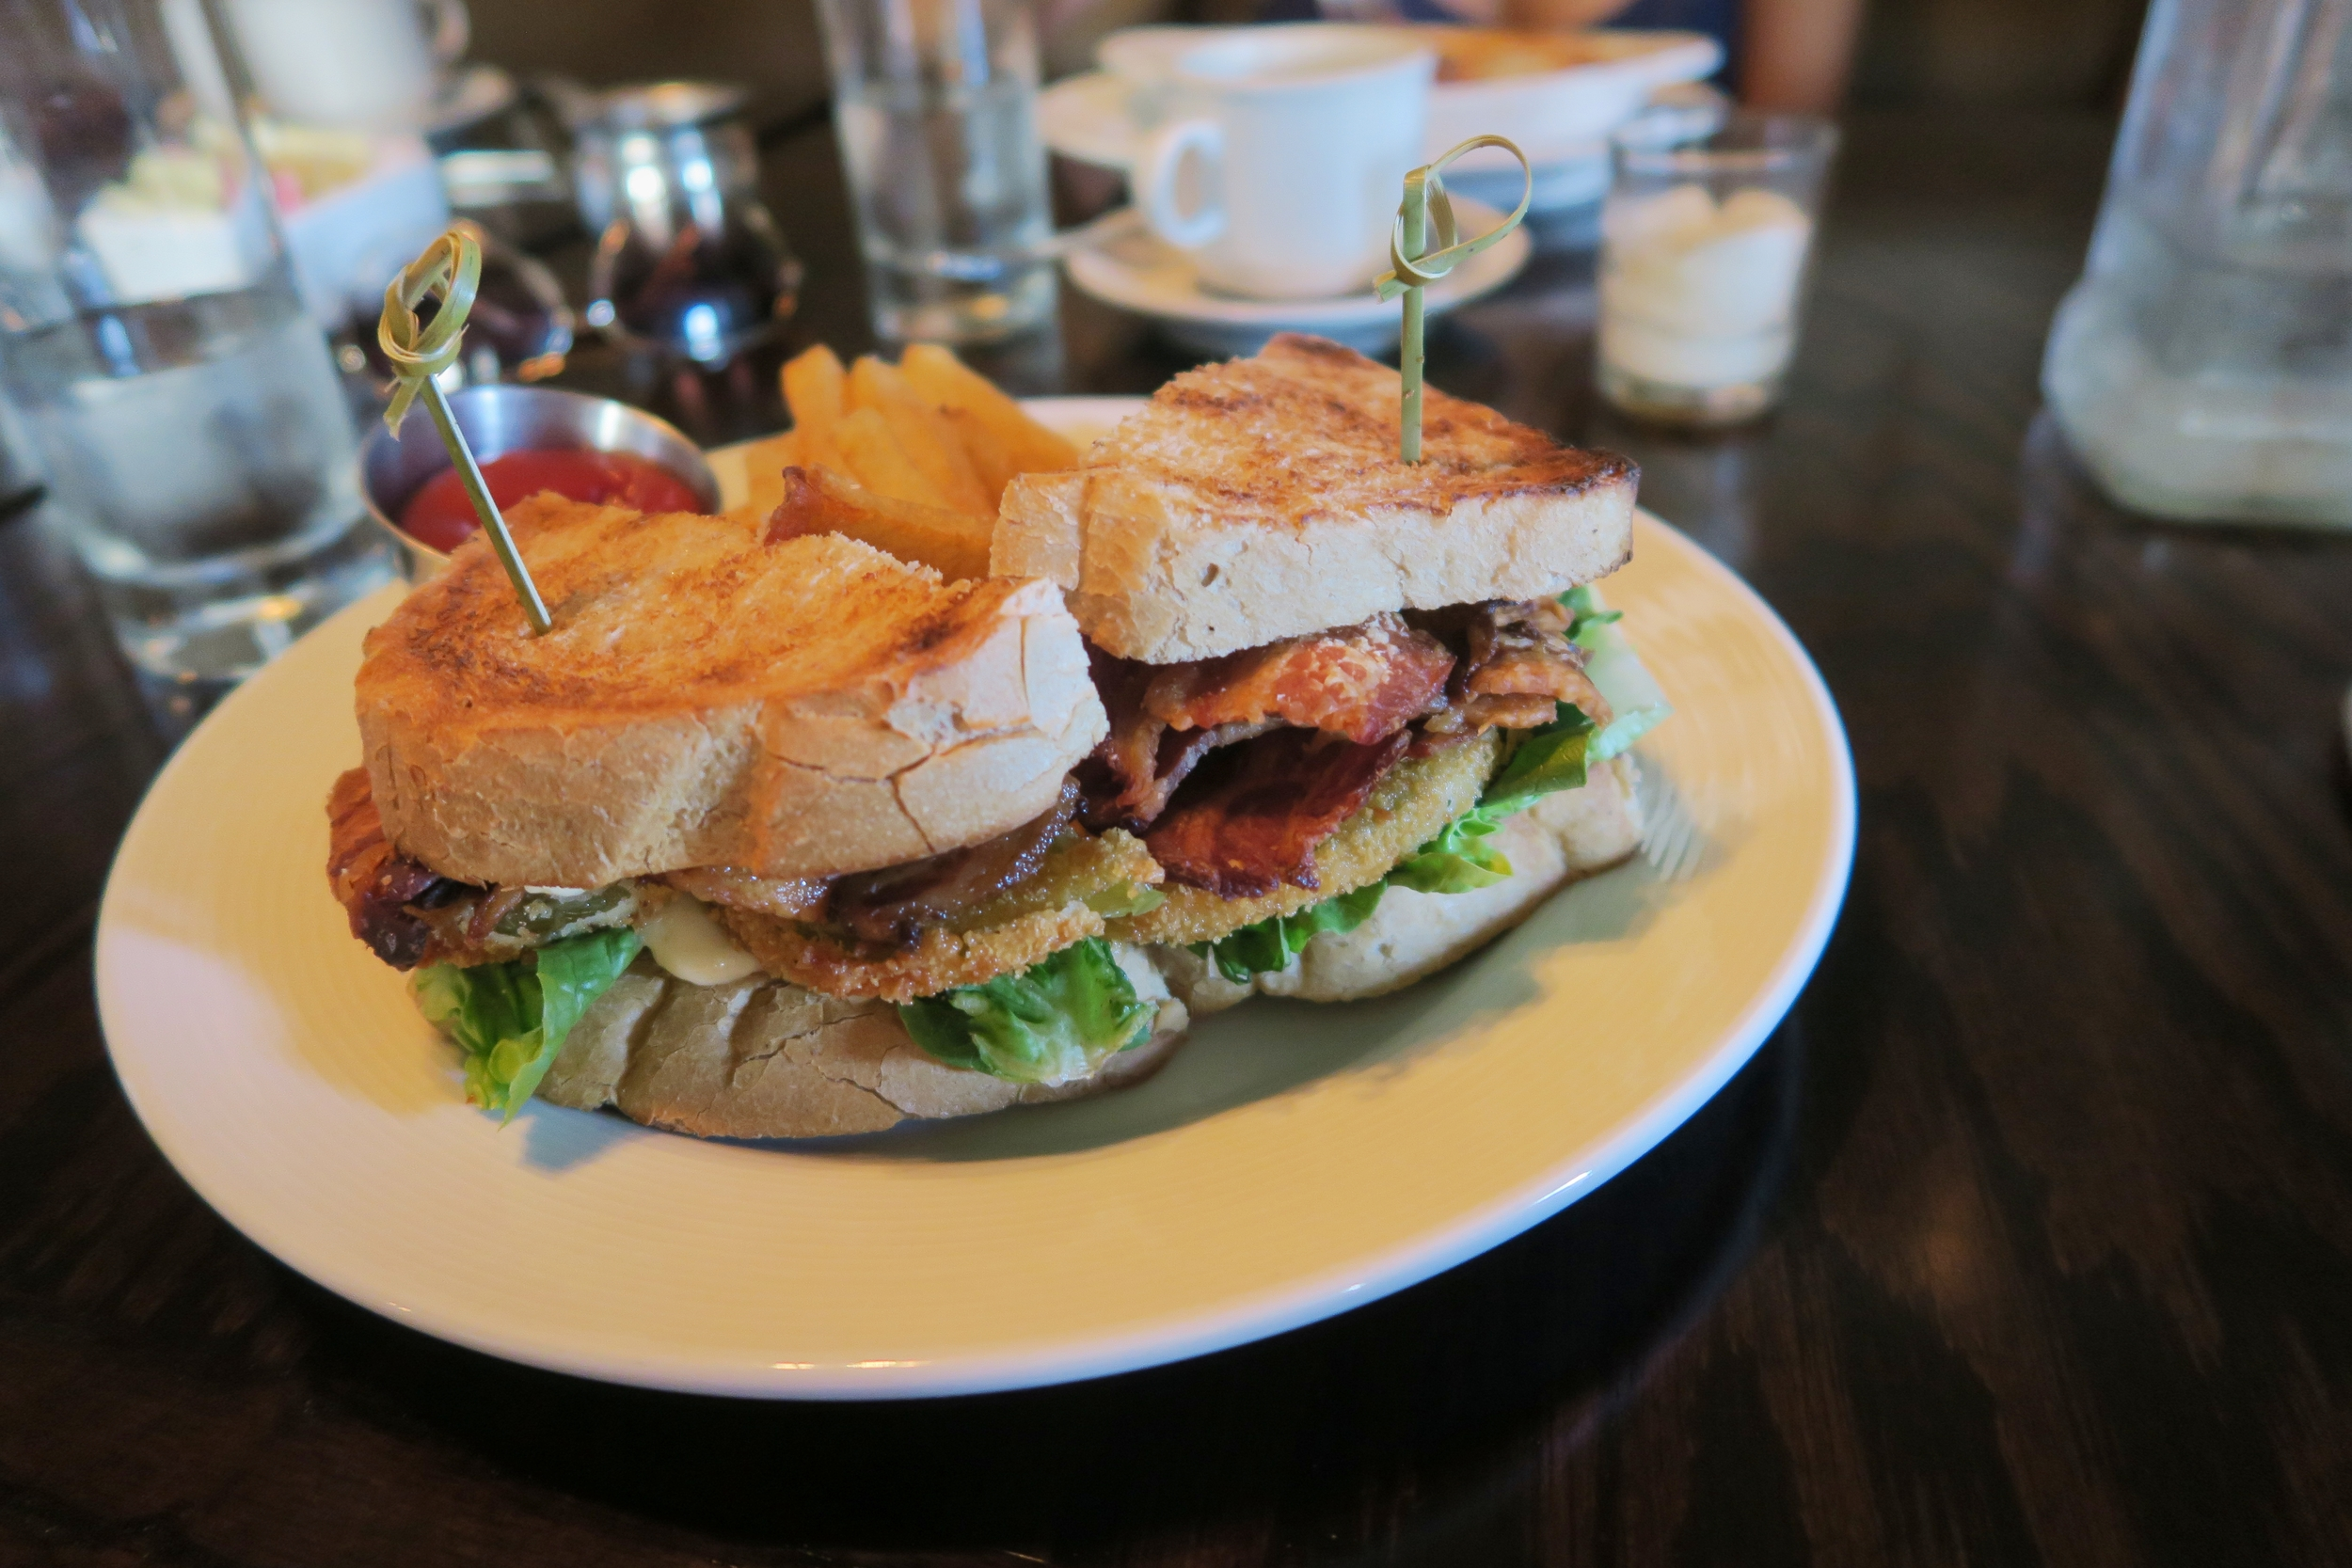 The Cub Room BLT: McCann's Bacon, Lettuce, Mayo, and Fried Greed Tomatoes with French Fries $12